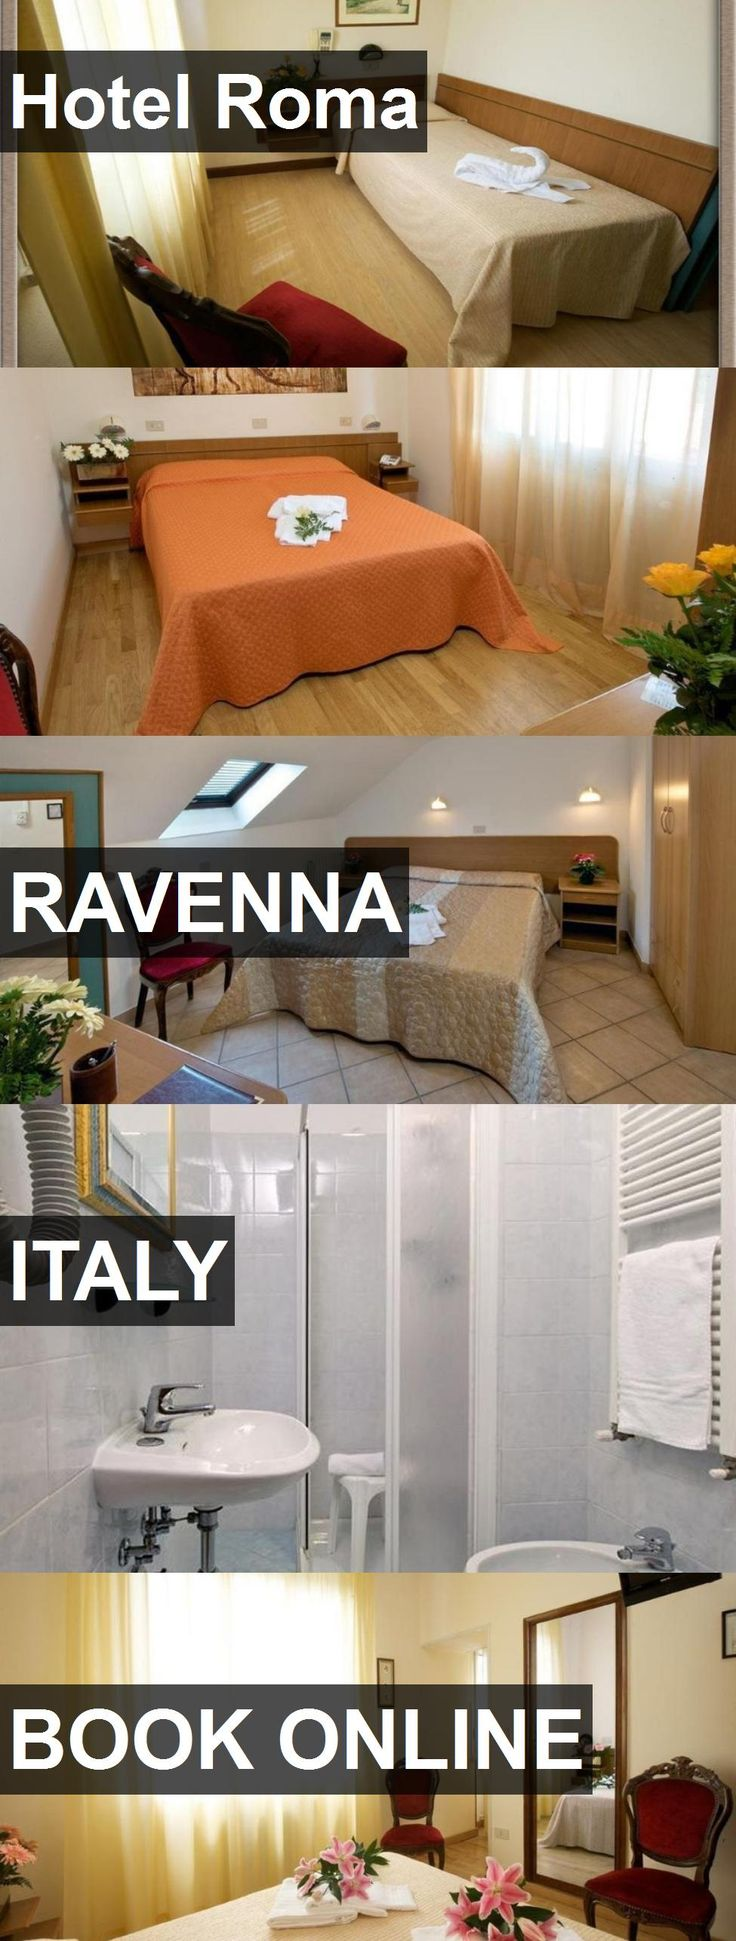 Hotel Roma in Ravenna, Italy. For more information, photos, reviews and best prices please follow the link. #Italy #Ravenna #travel #vacation #hotel